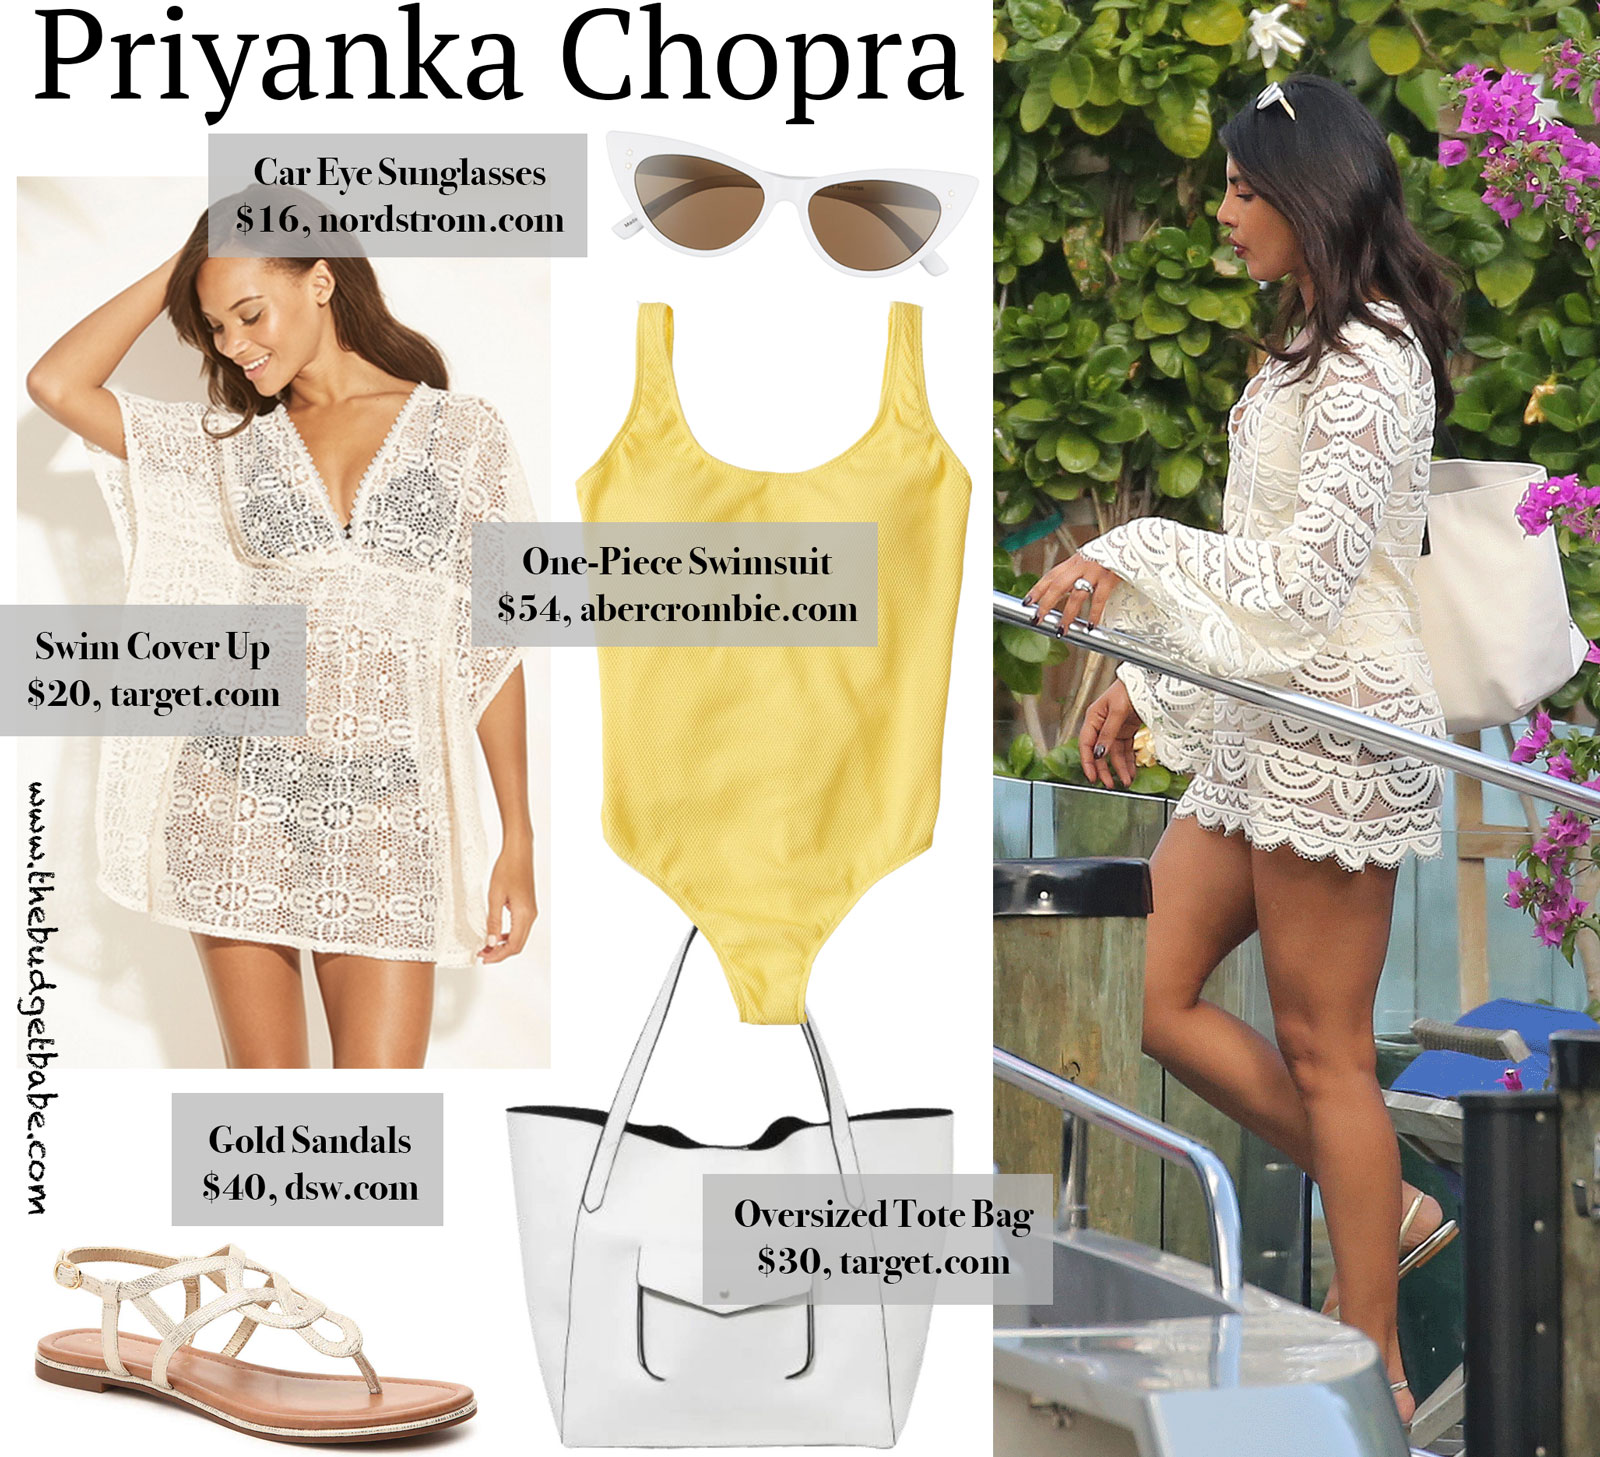 Priyanka Chopra White Swim Cover Up Look for Less